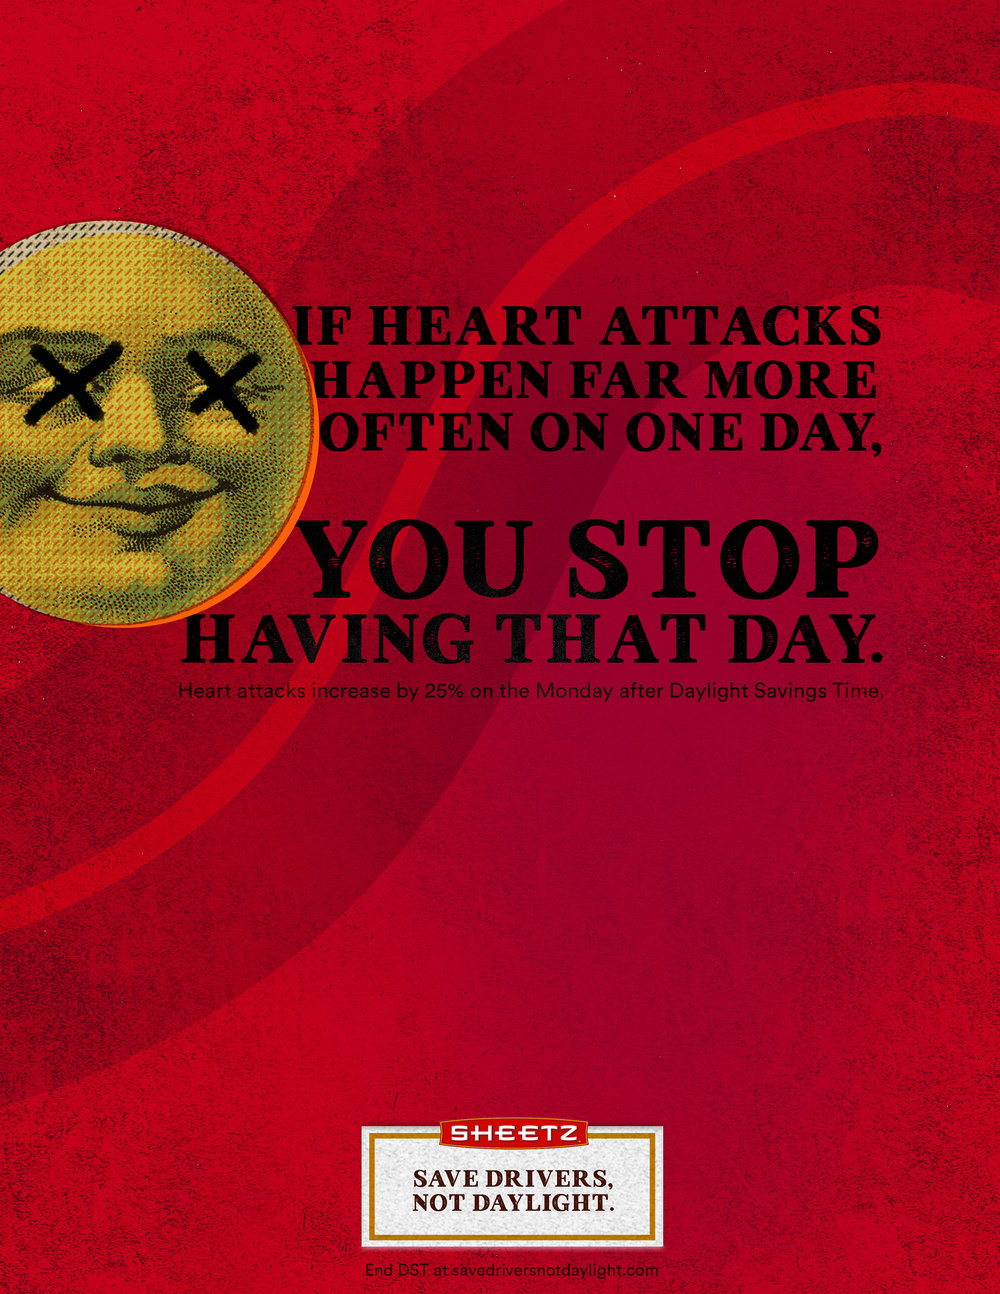 sheetz print 2.26_0000_heart attac.jpg